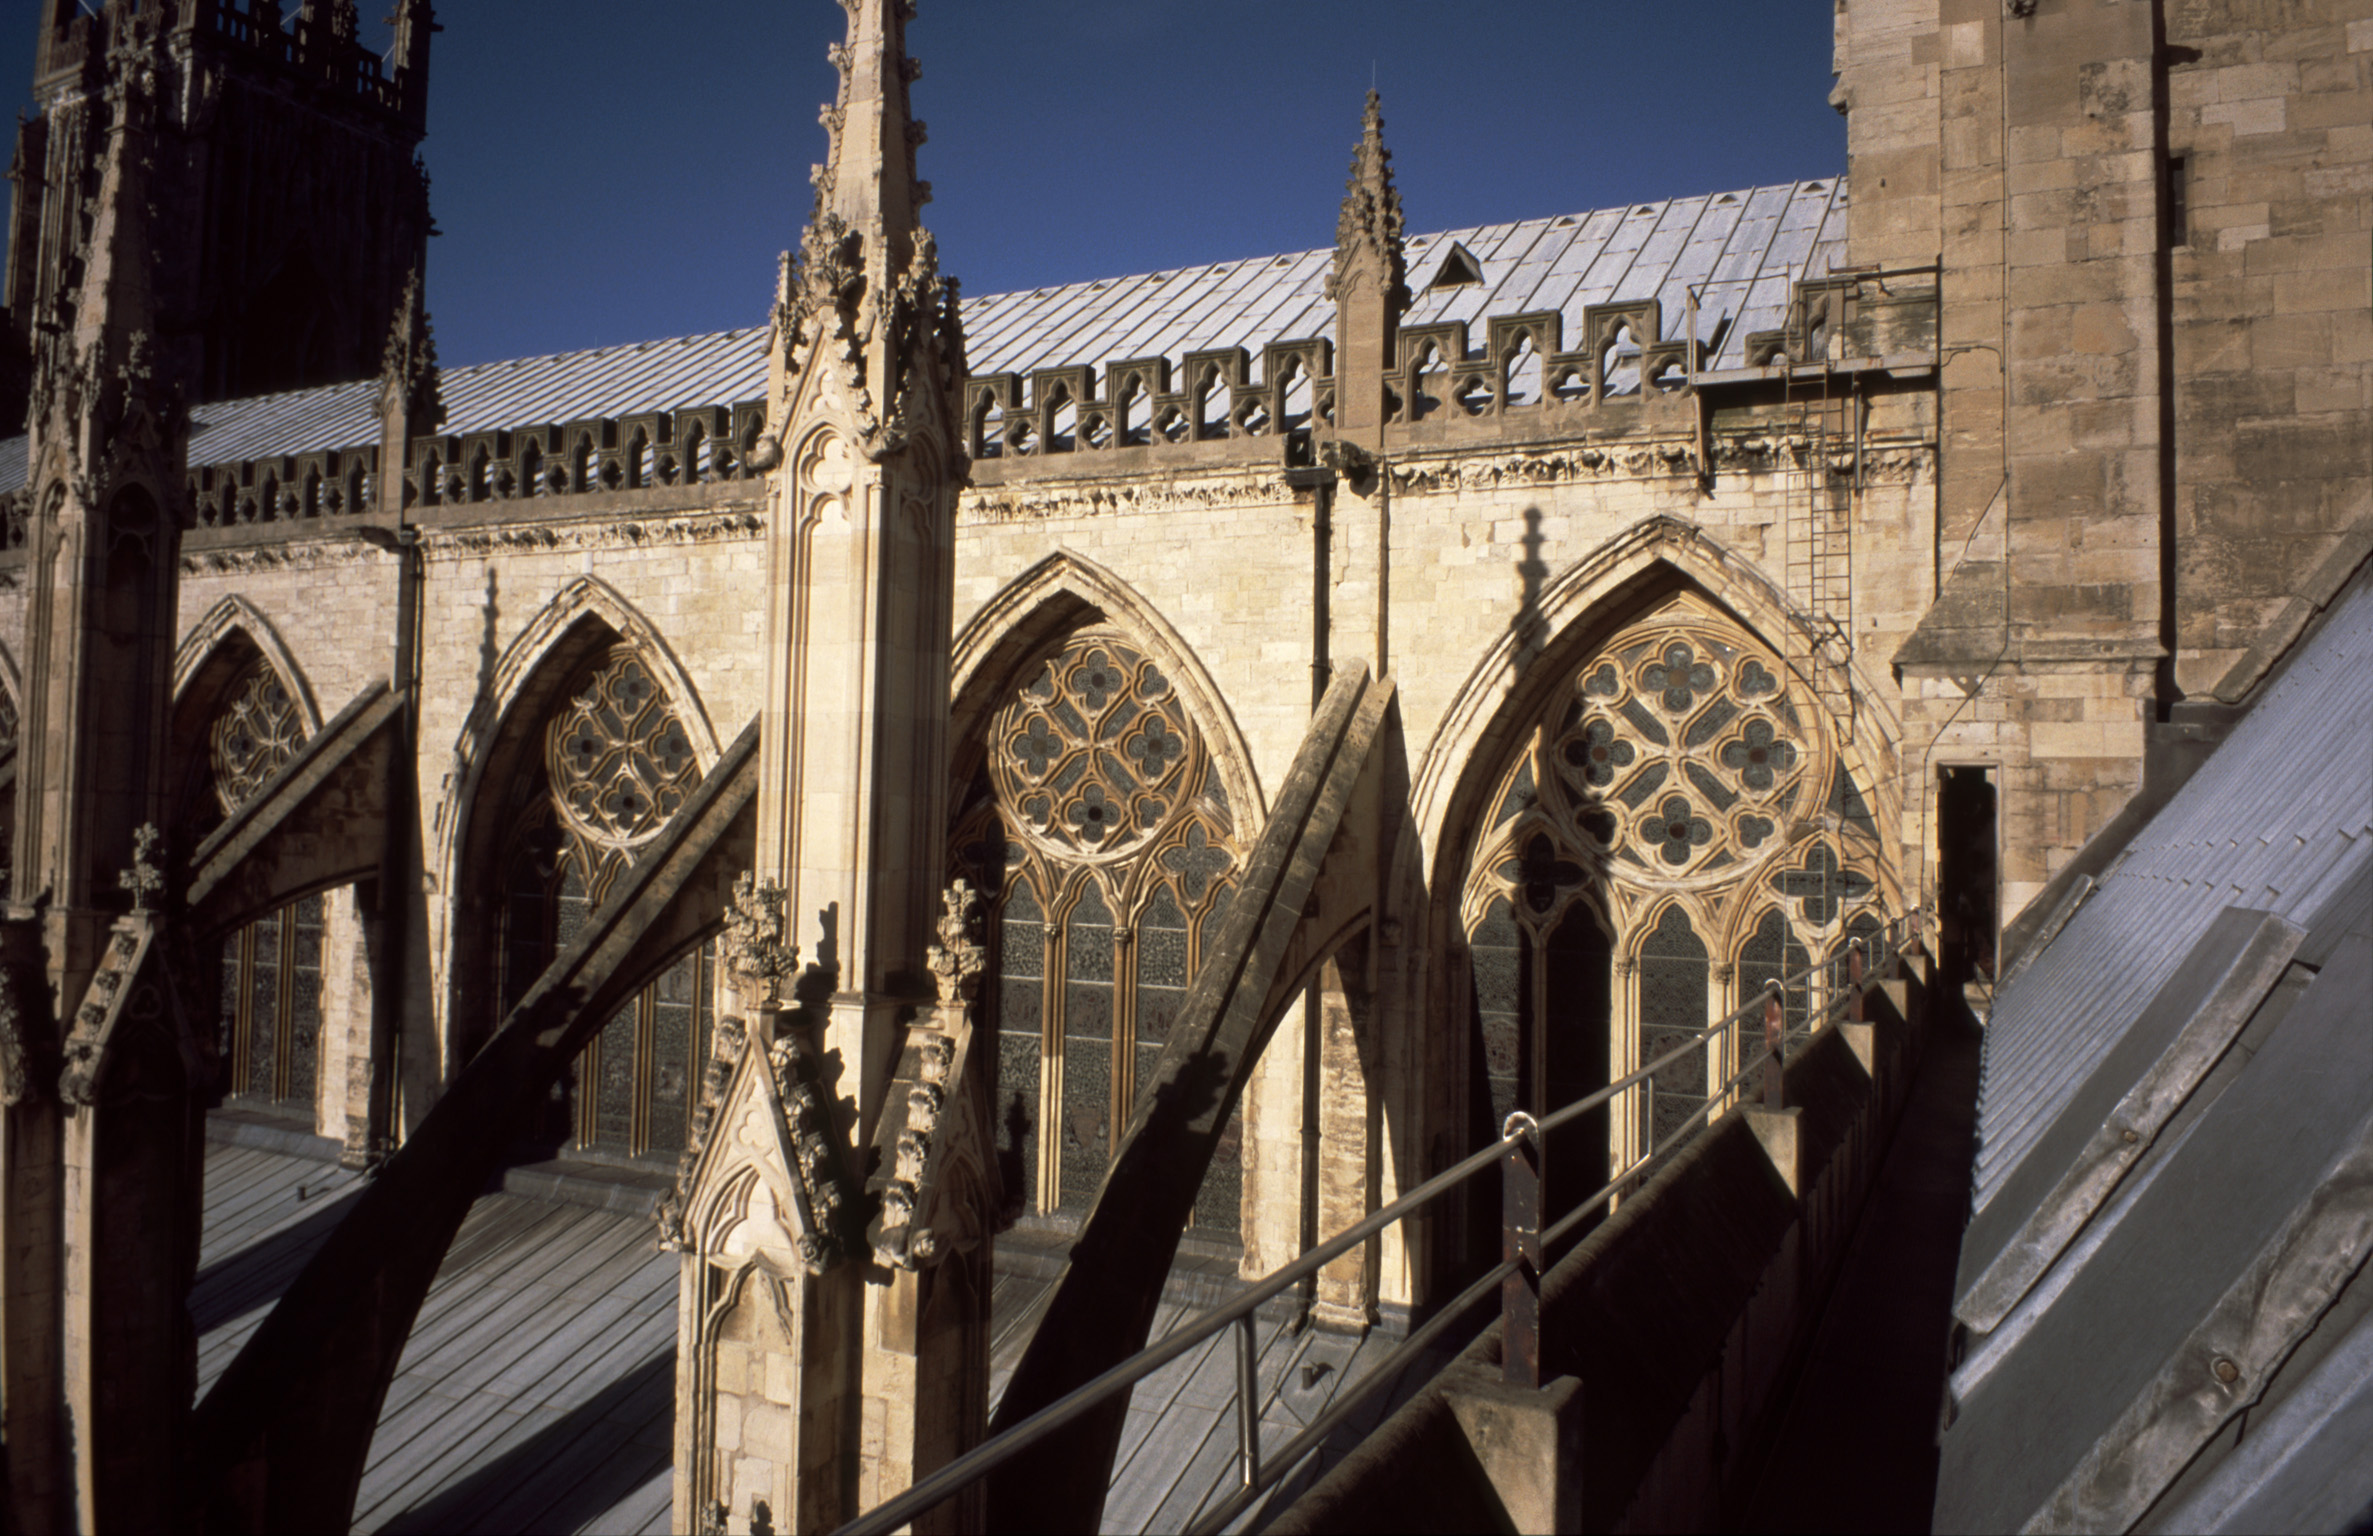 Architectural Exterior of Gothic Nave of Historical York Minster Cathedral, York, England